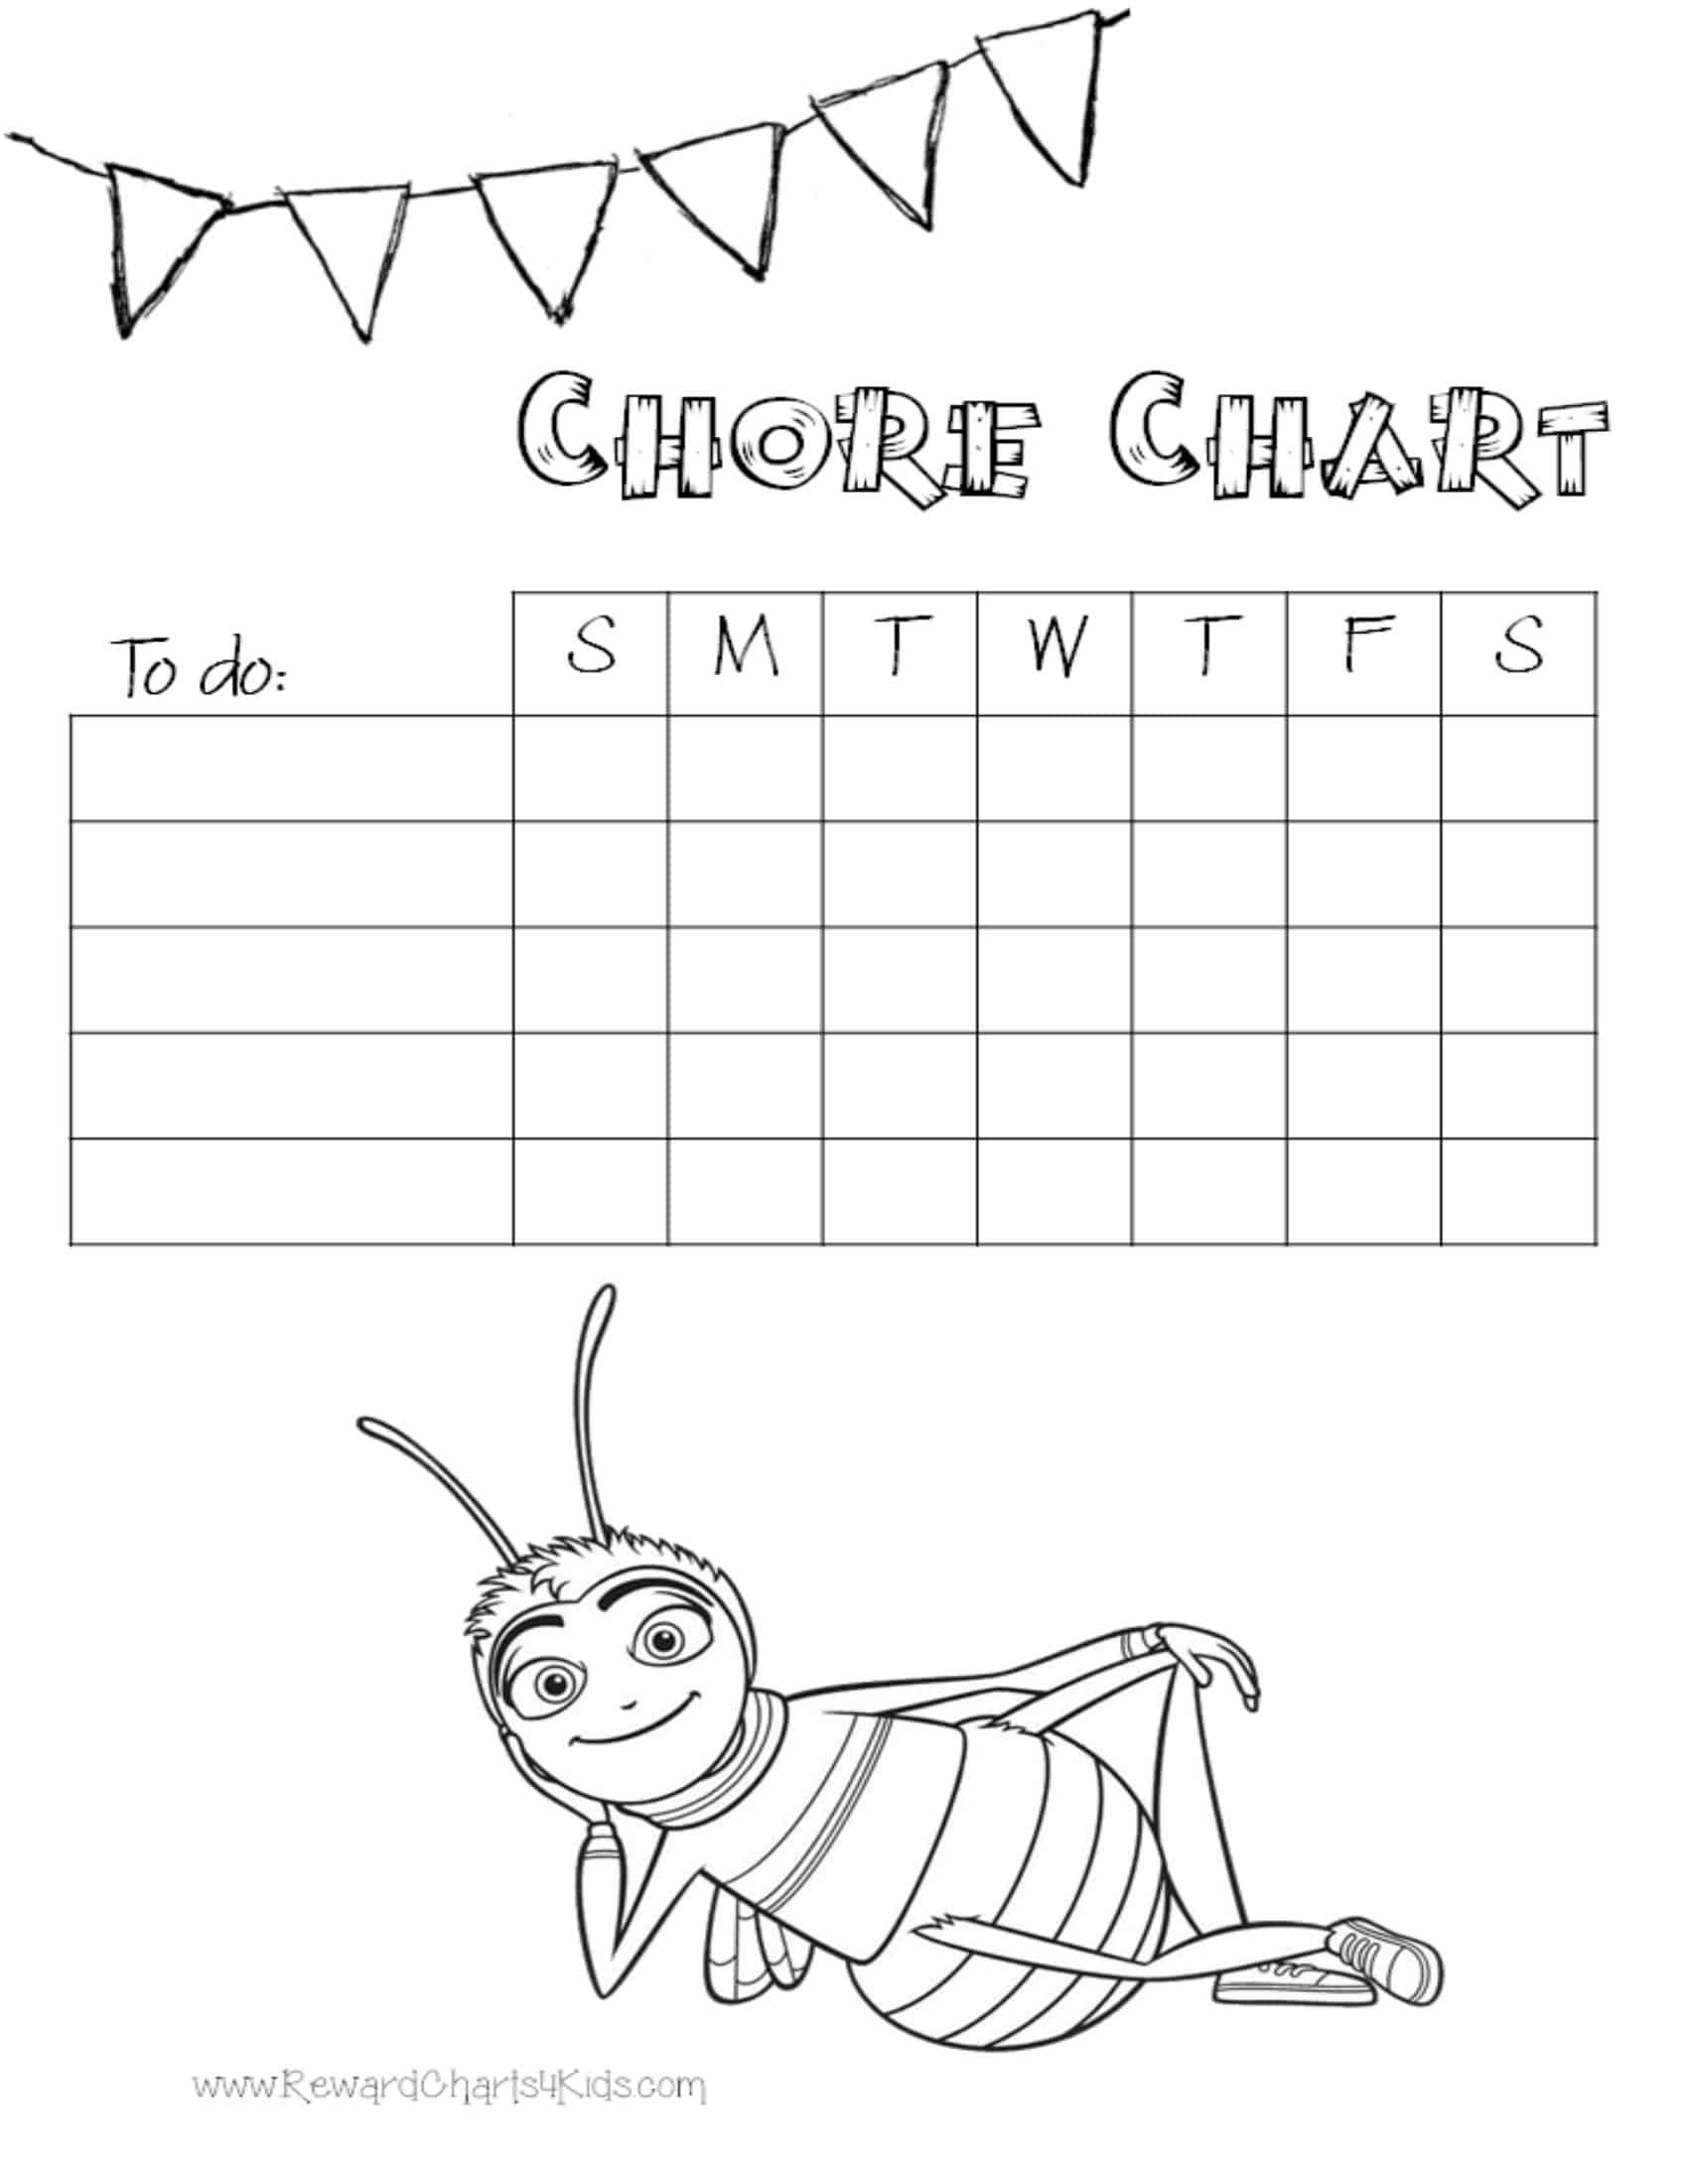 coloring pages kids chores by age | Chore Charts for Kids